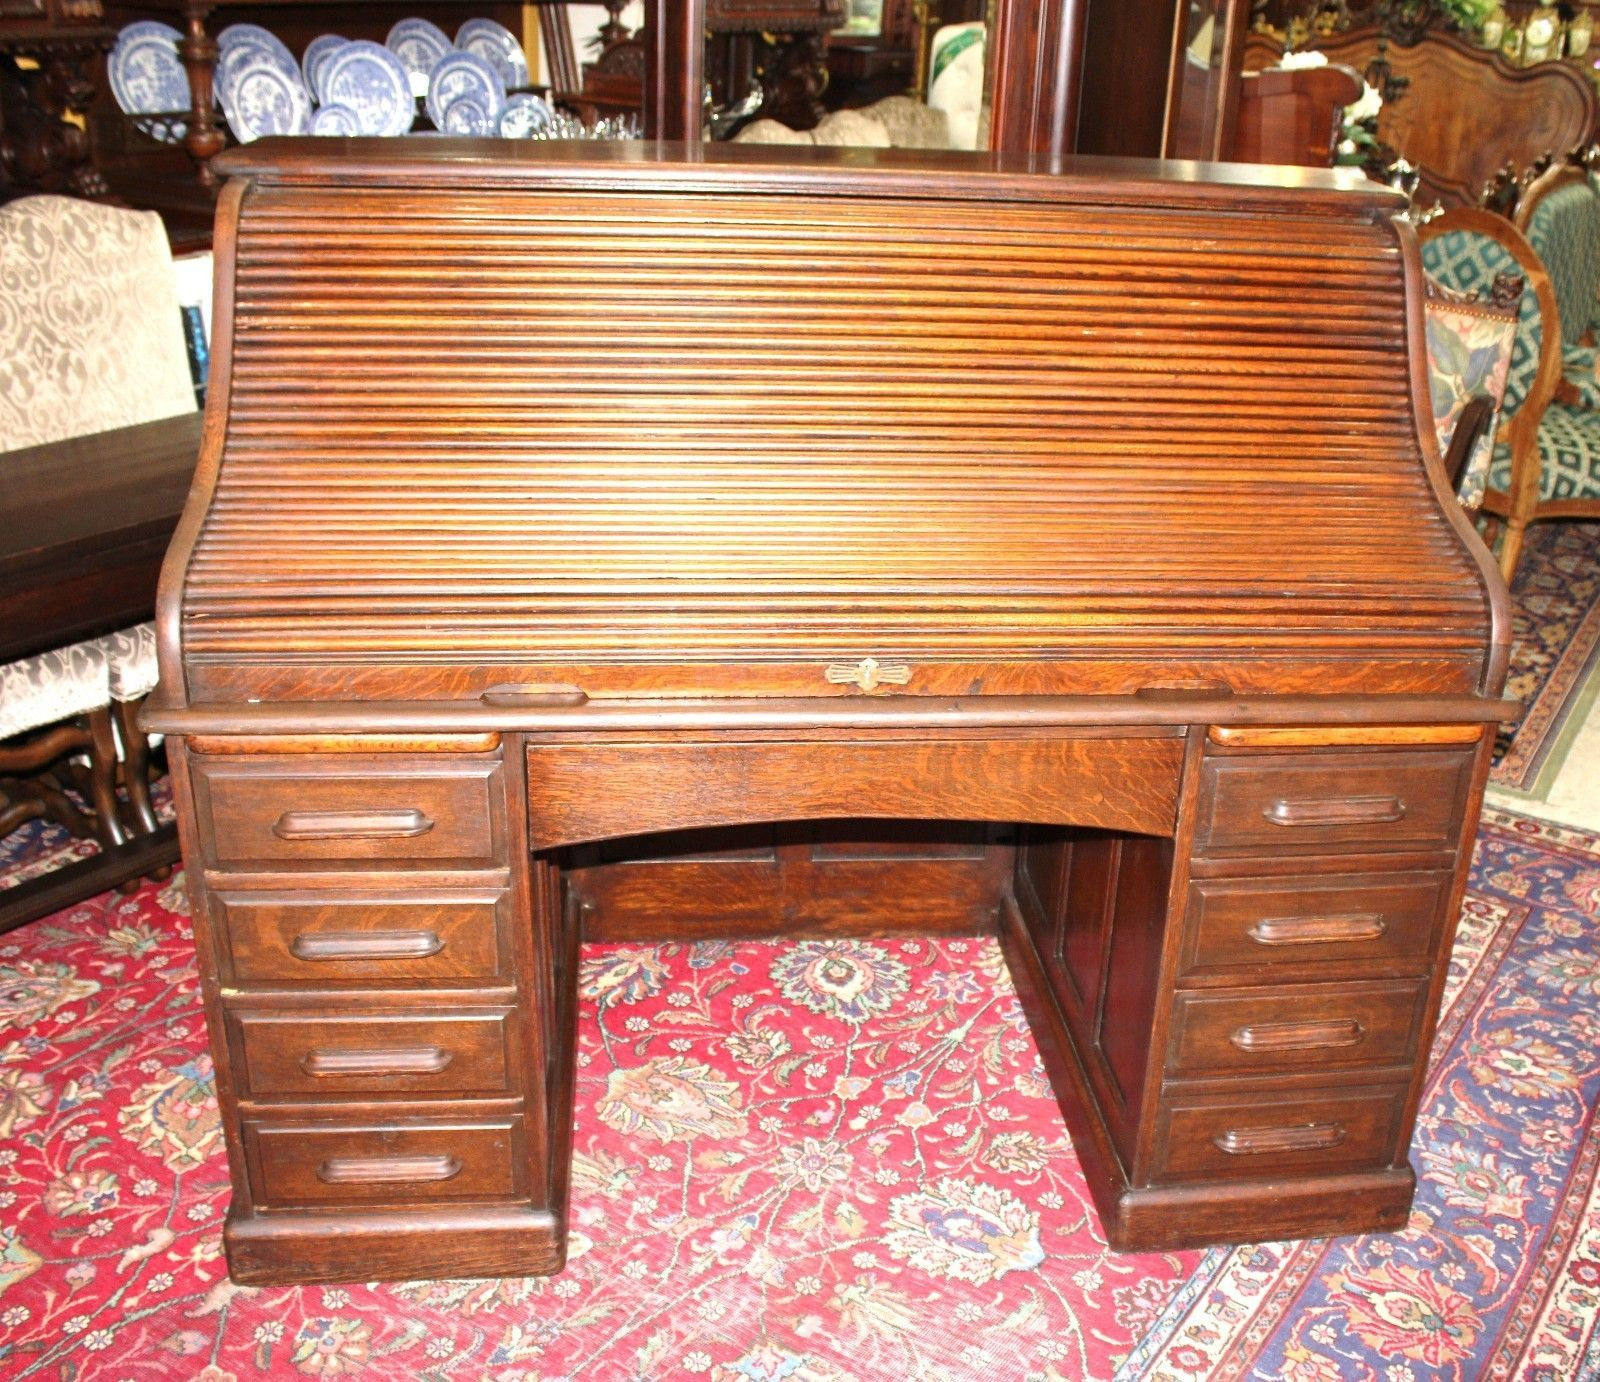 Beautiful American Antique Oak Roll Top desk.